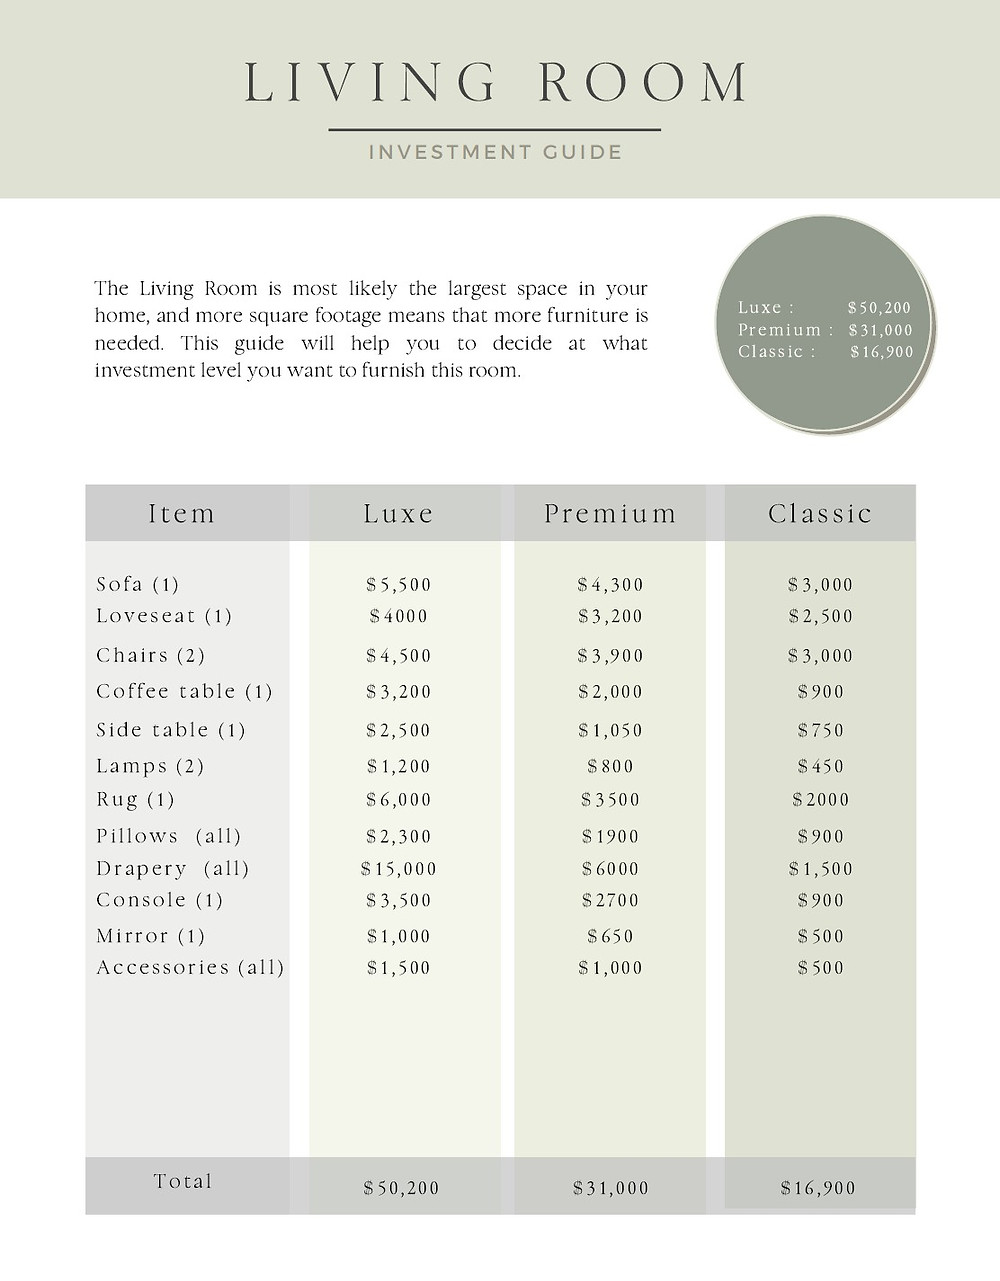 A page from our Investment Guide